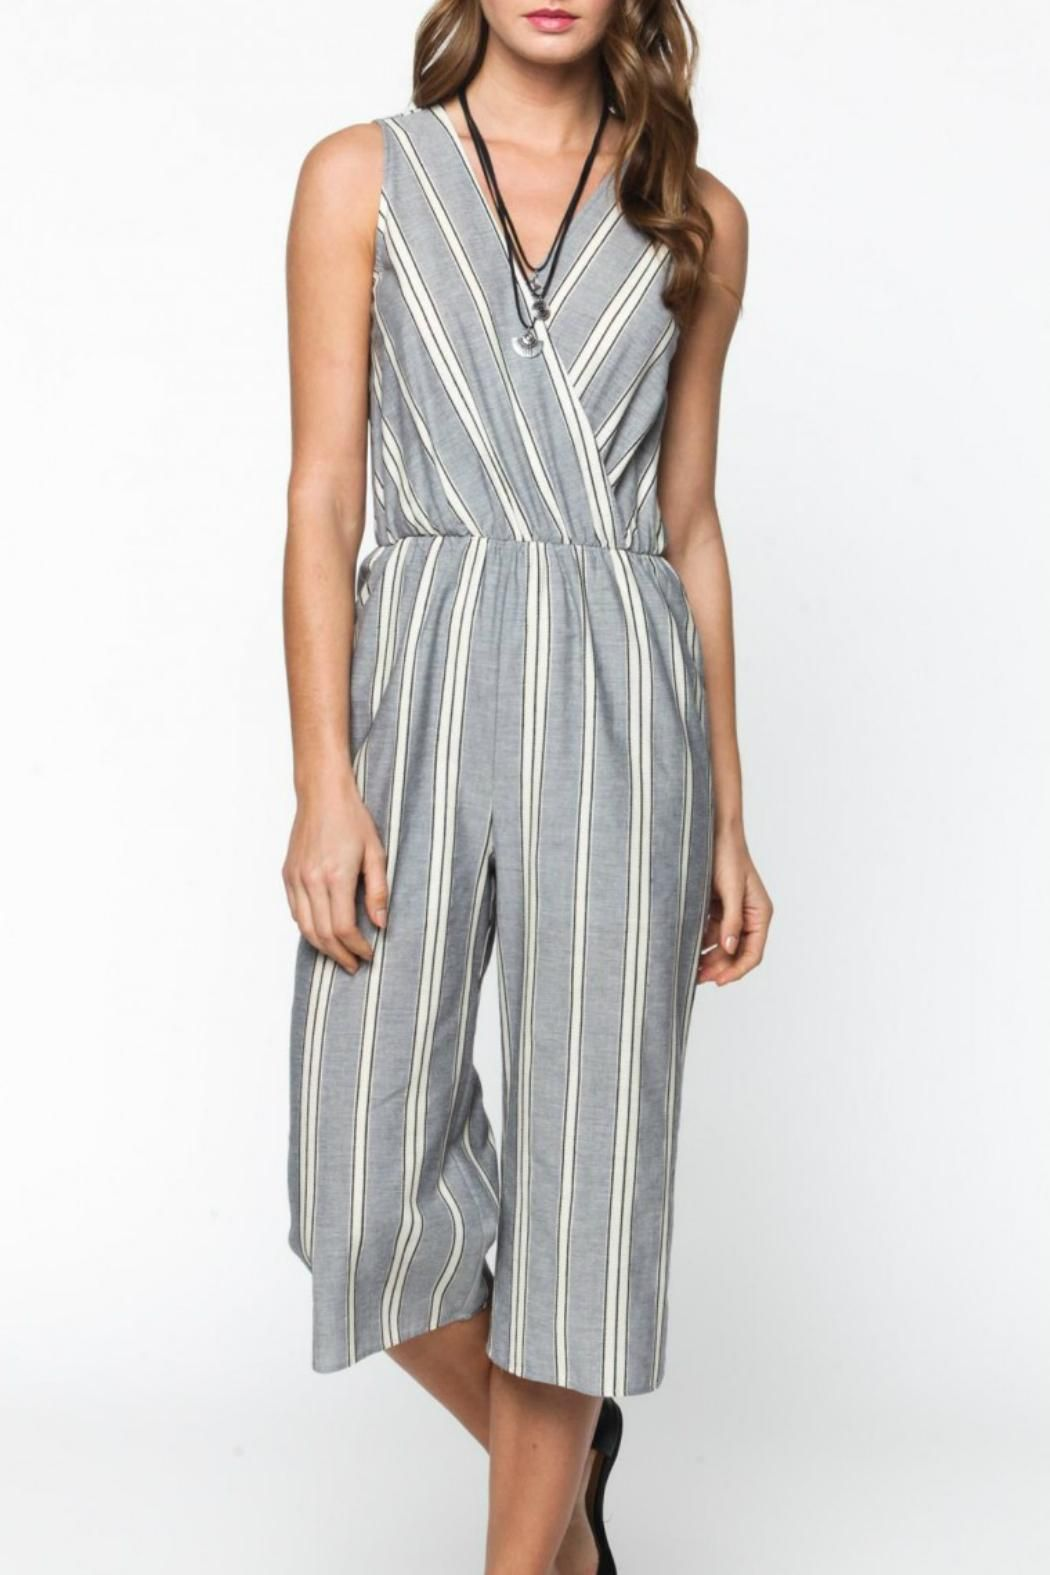 4ca391e44442 Striped mid--calf length jumpsuit with v neck and back. Striped Capri  Jumpsuit by Everly. Clothing - Jumpsuits & Rompers - Jumpsuits Texas